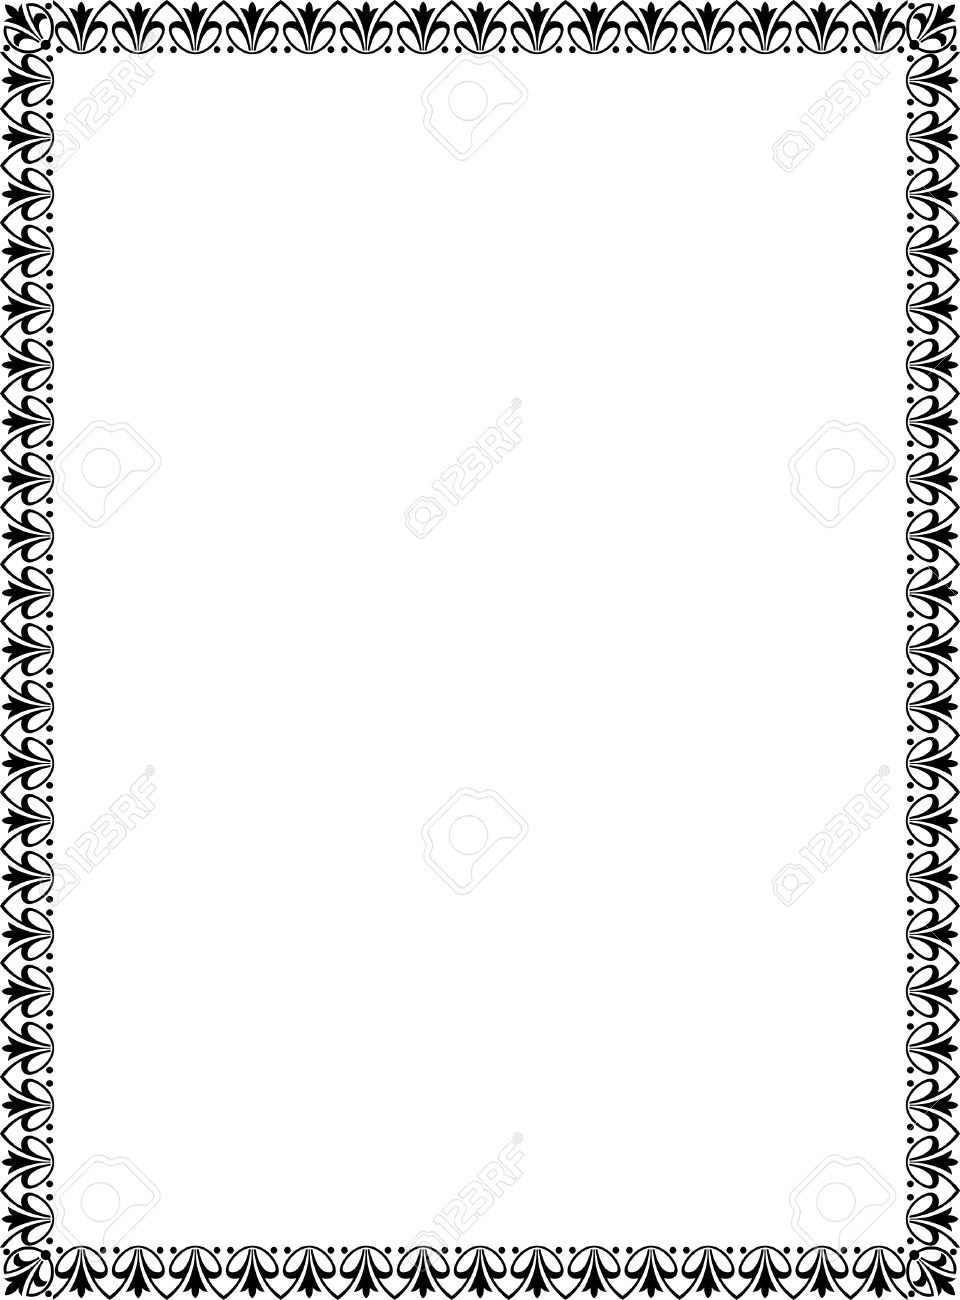 Simple tiling and white. Black frame thin clipart